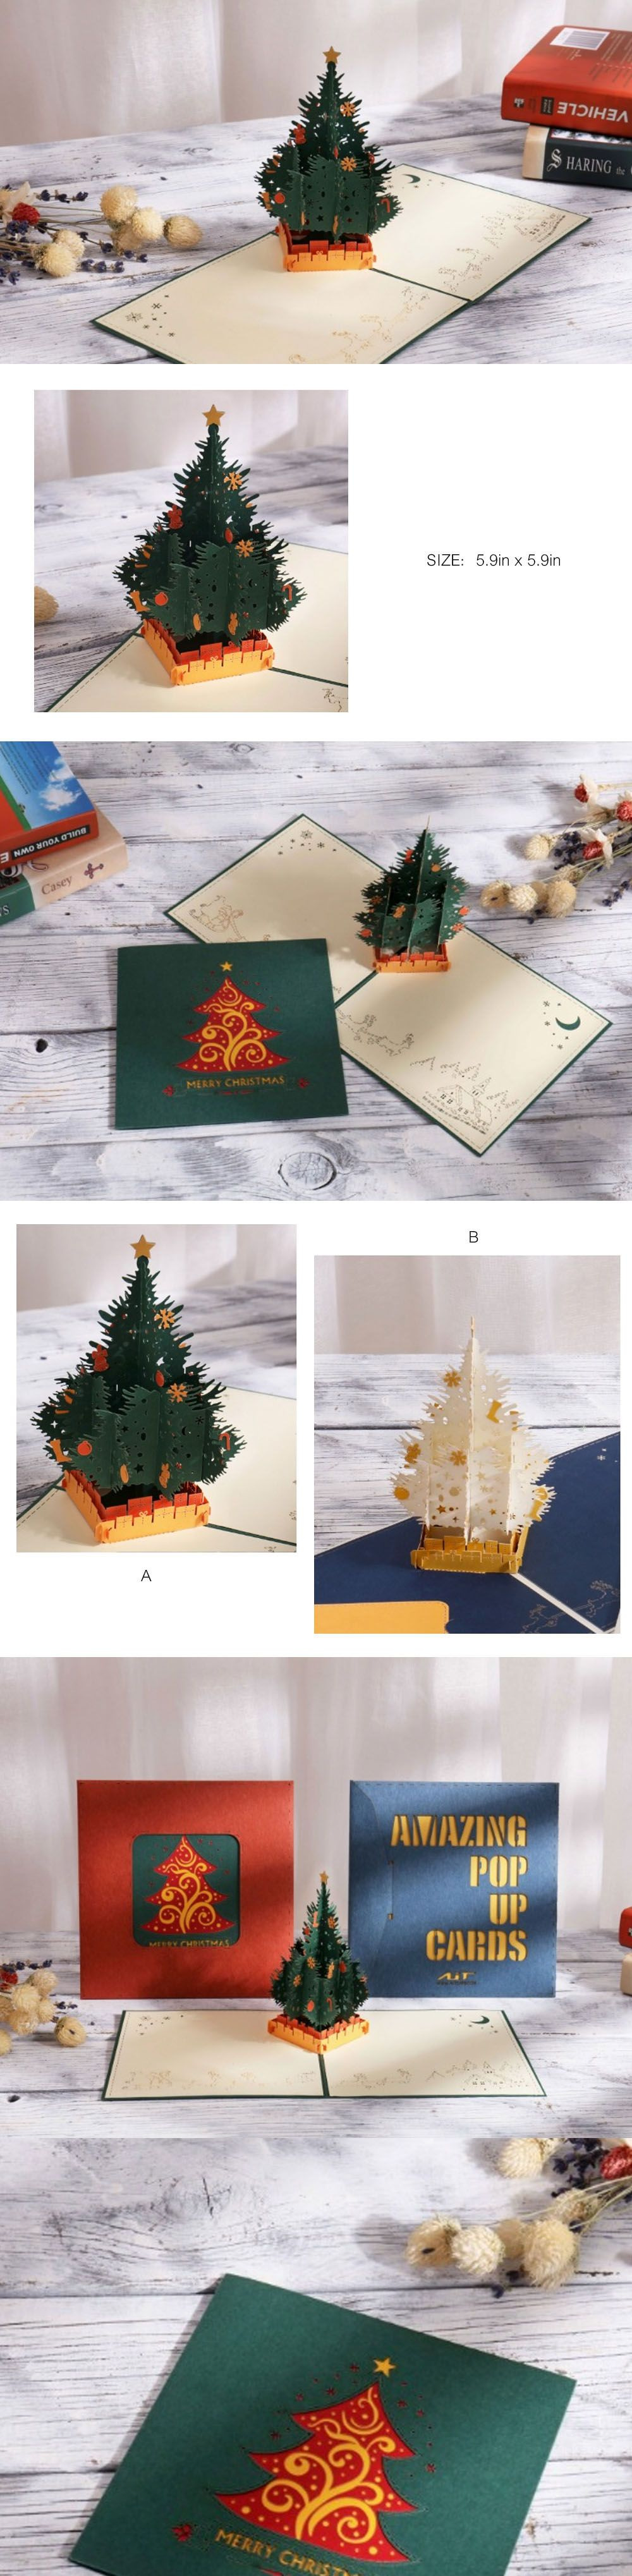 AIT Christmas Tree Greeting Card 3D Pop Up Card